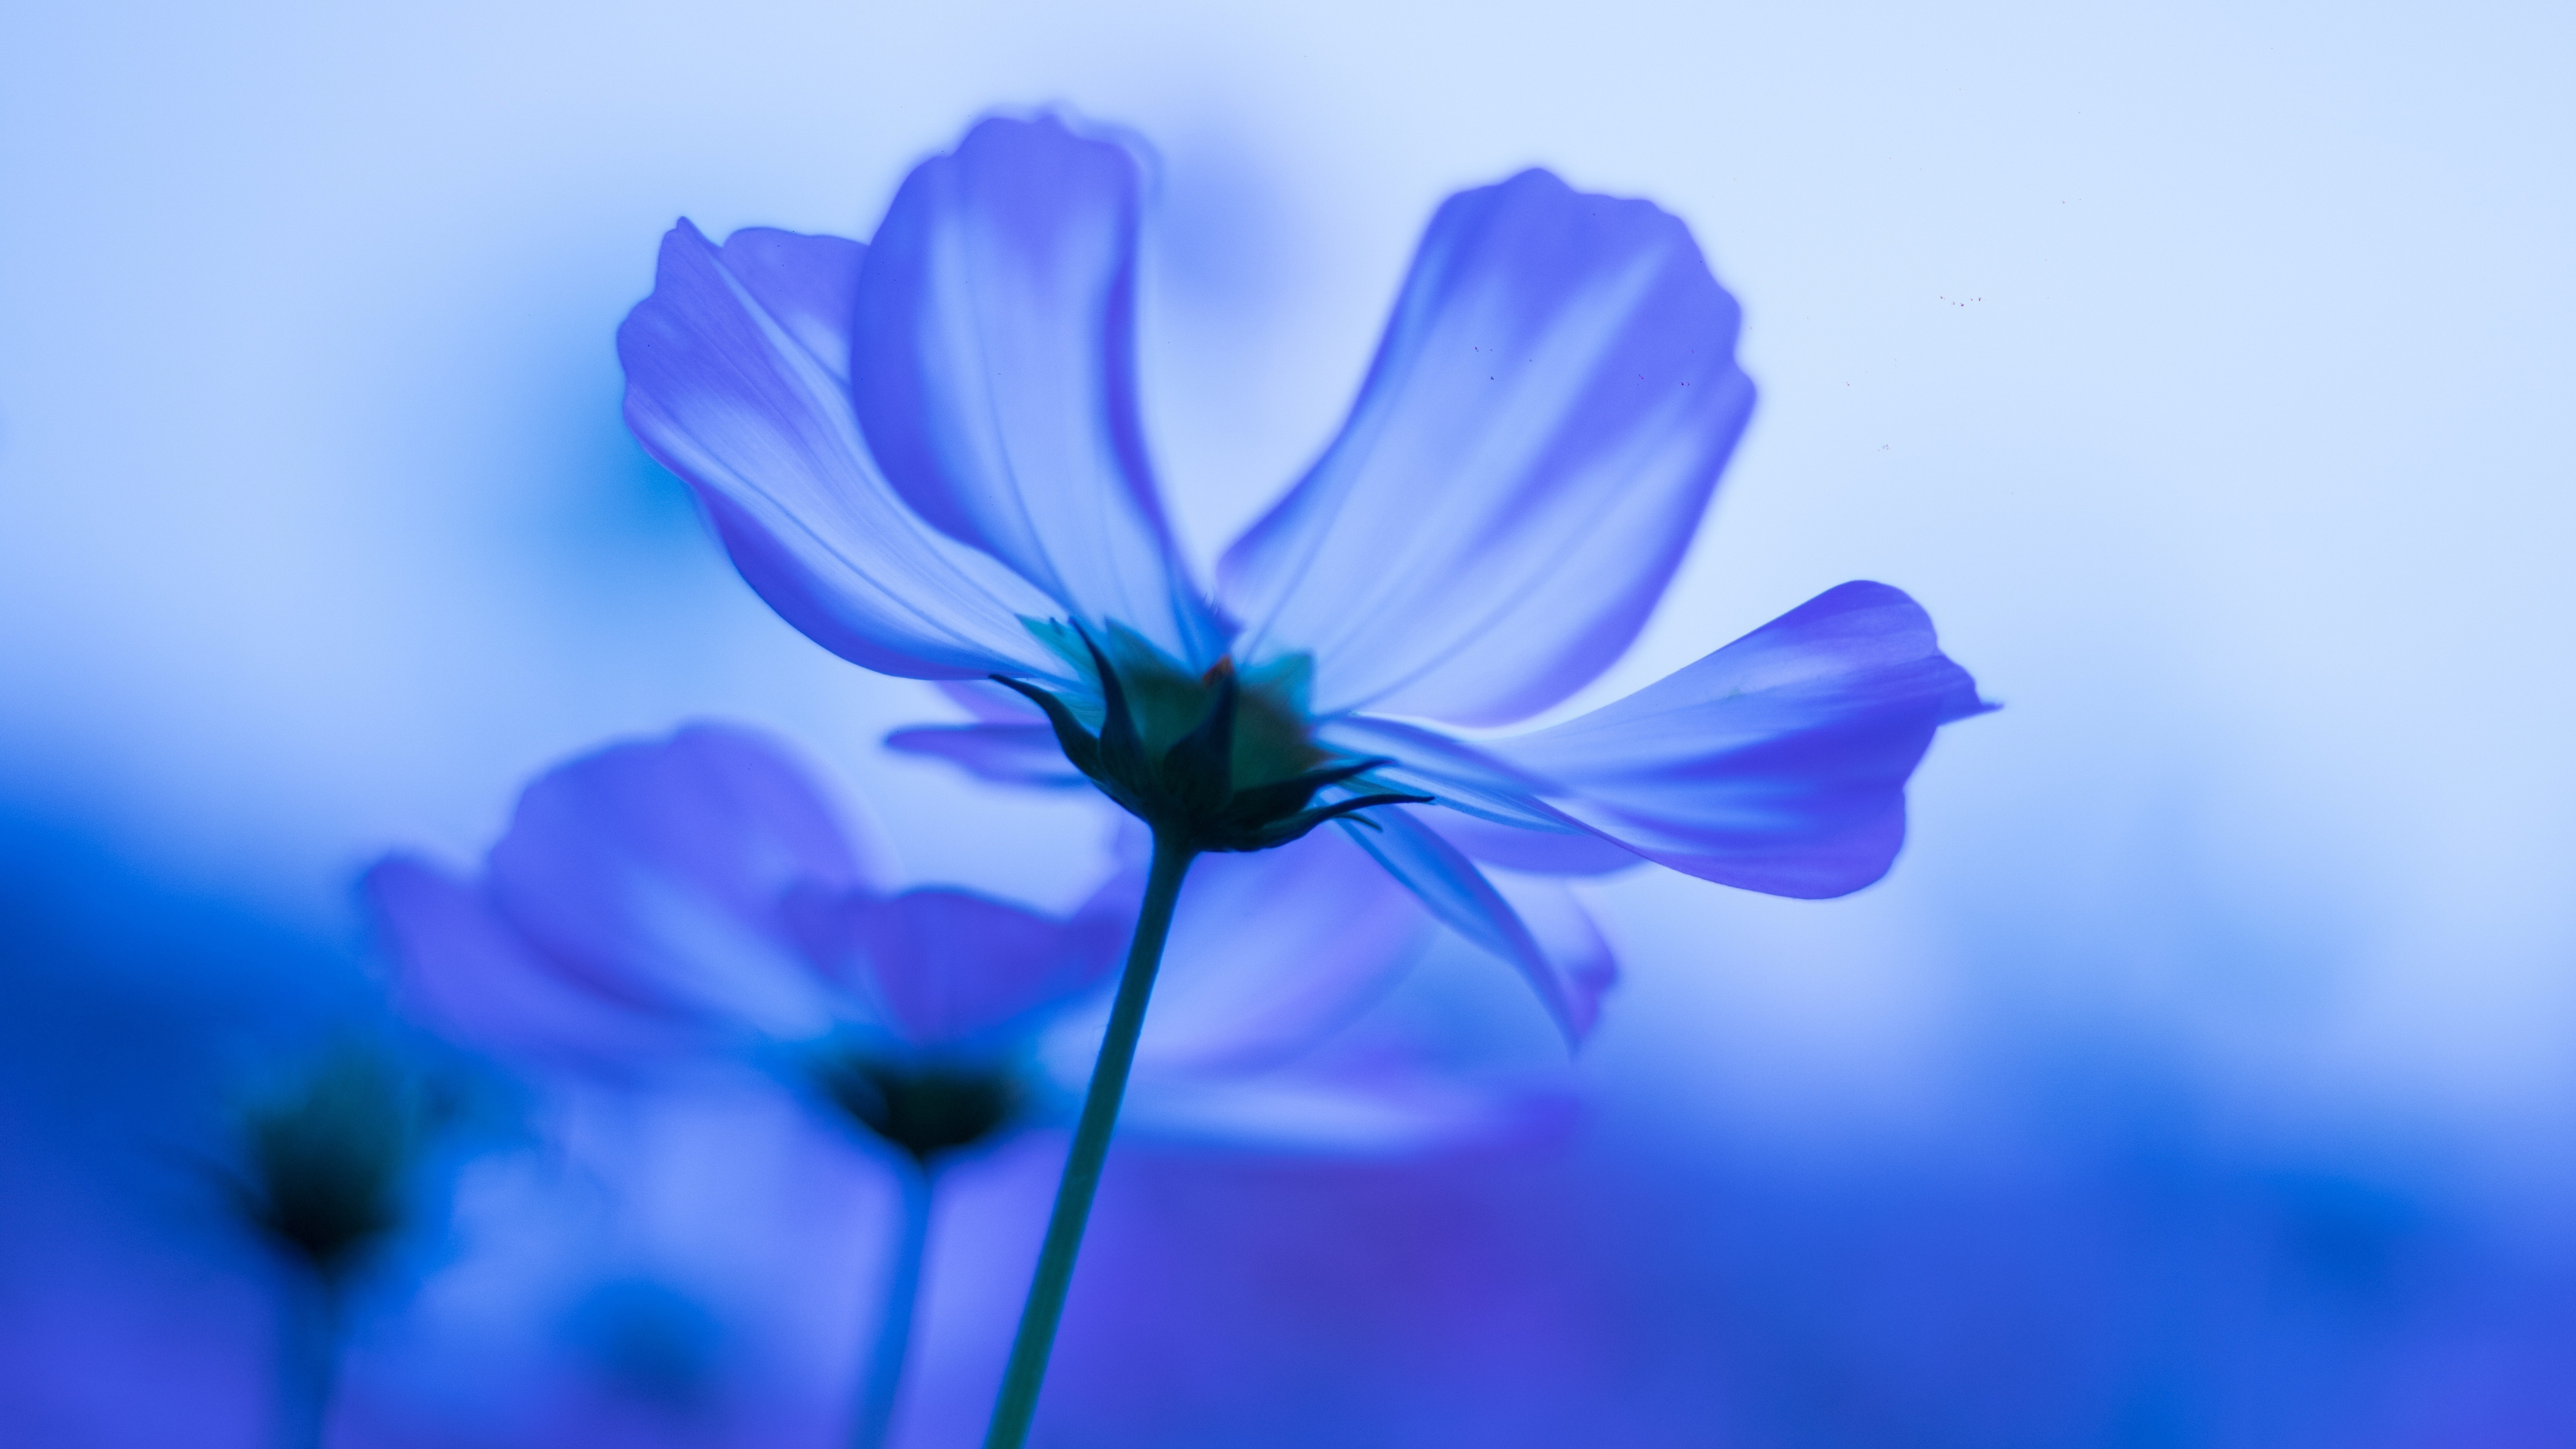 Wallpapers Samsung Galaxy Note 5 Ultra Hd 2160 3840 78: Download 3840x2160 Wallpaper Blue Flowers, Cosmos, Blur